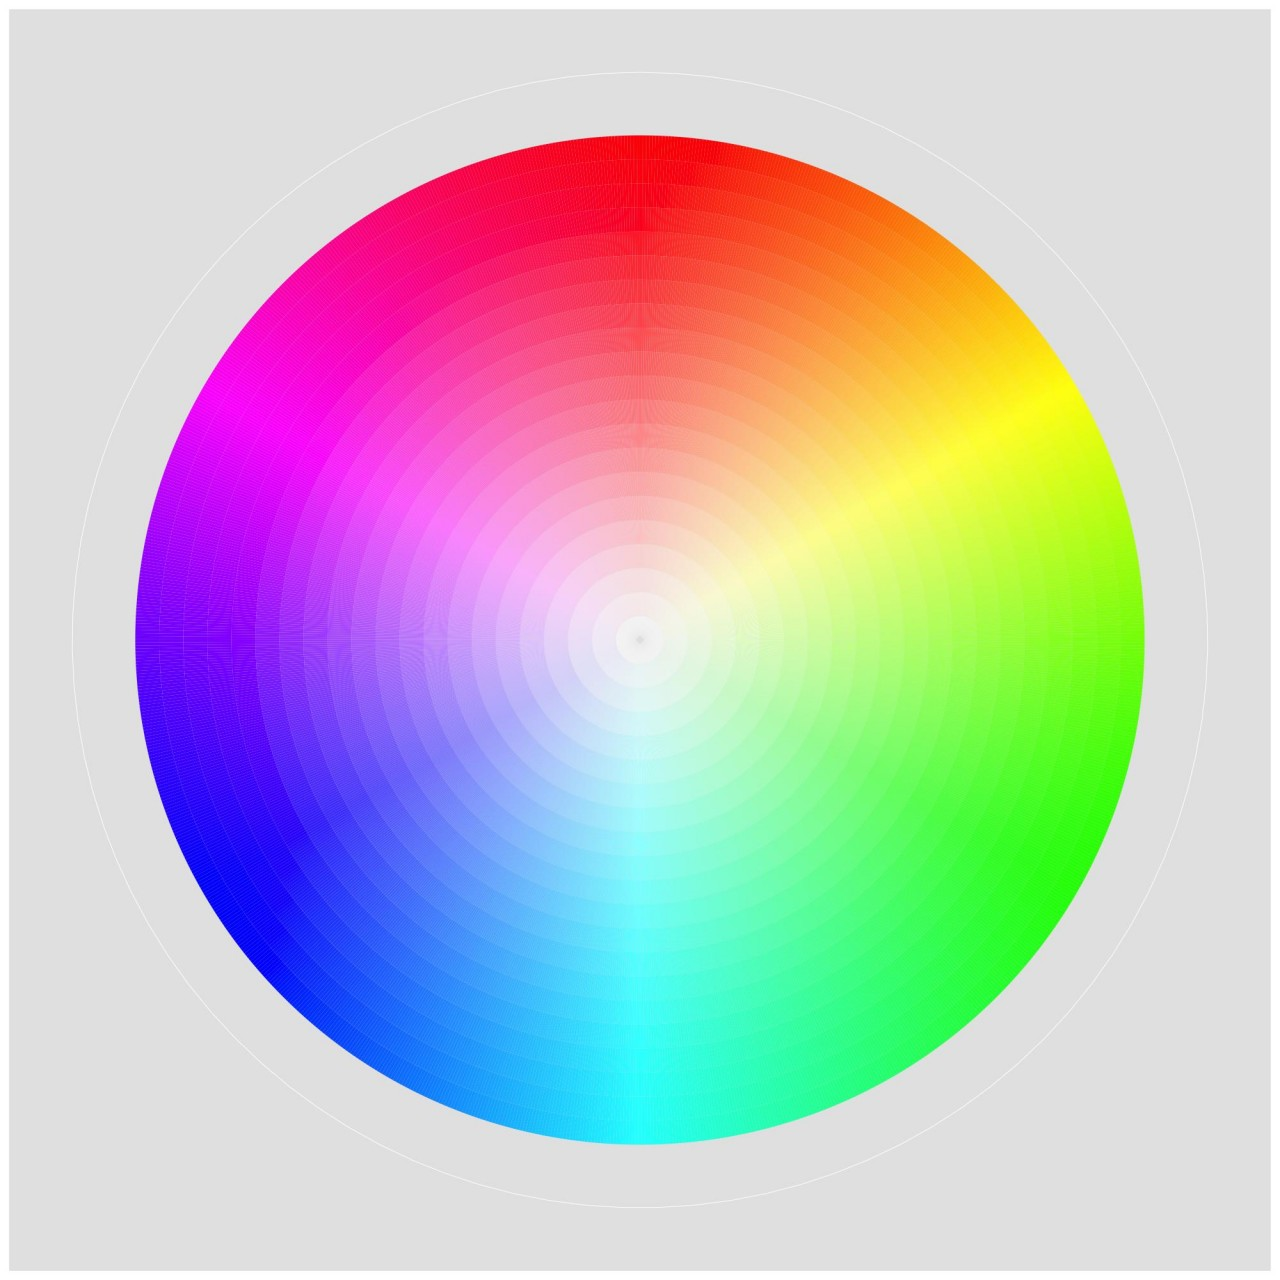 Which Means That The Primaries Of Light And Pigment Are Opposite Each Other On Color Wheel Cyan Is Red Magenta Green